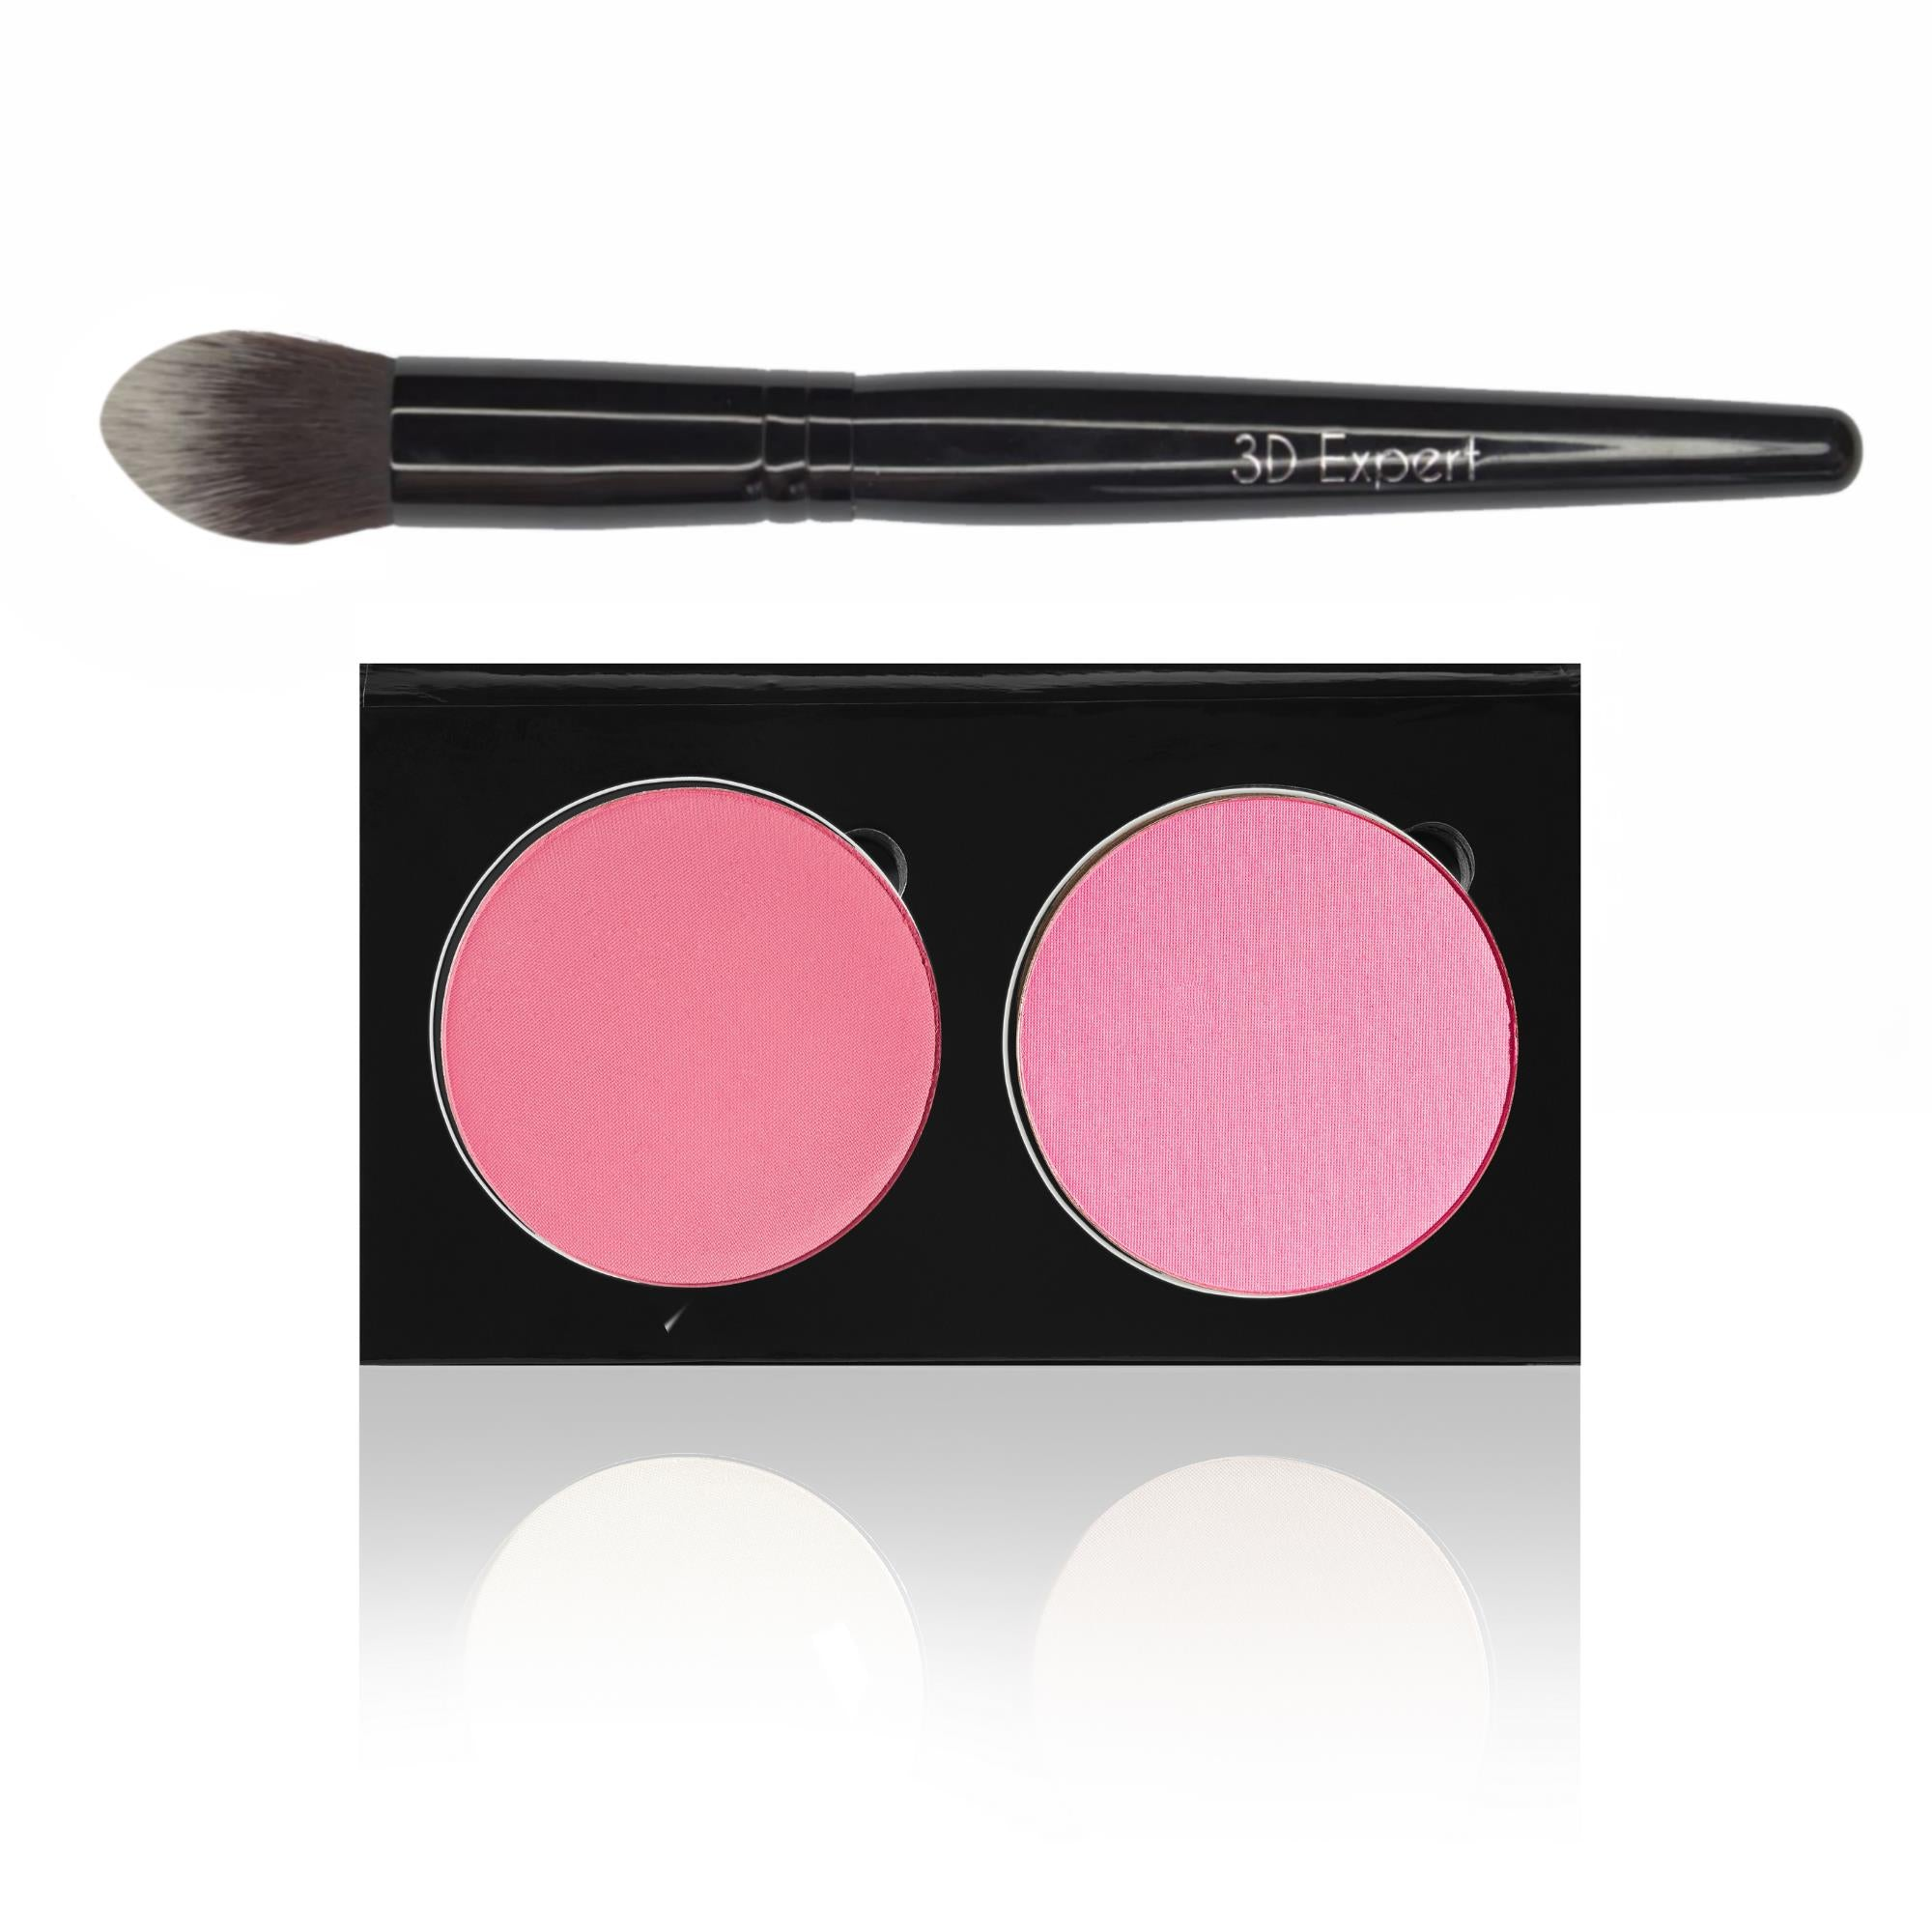 ALLURING / DAINTY DOLL - BLUSH DUO PALETTE AND 3D EXPERT BRUSH SET